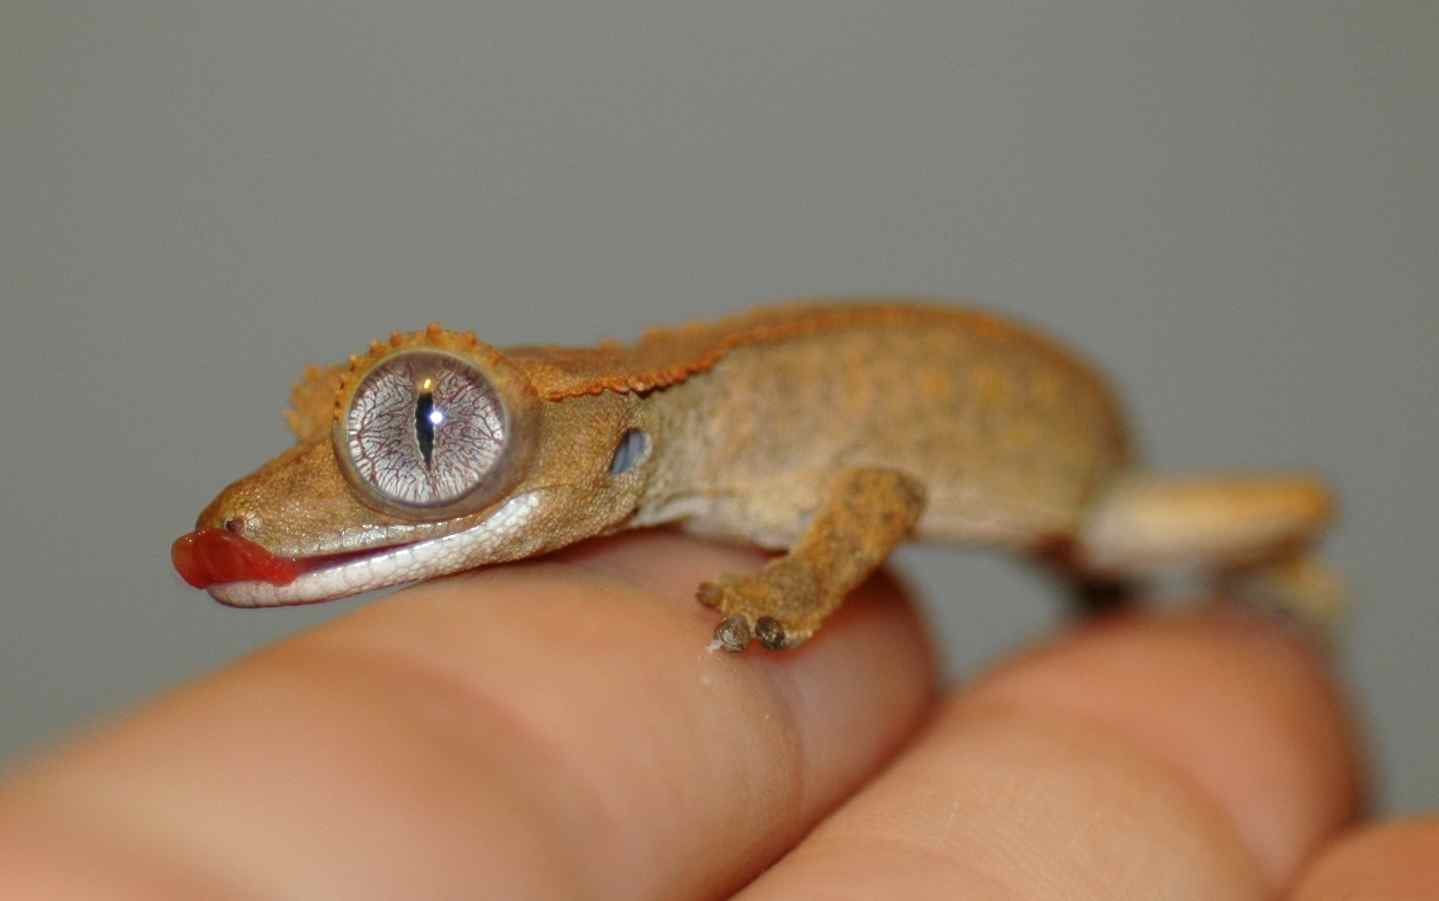 Gecko Pictures Kids Search